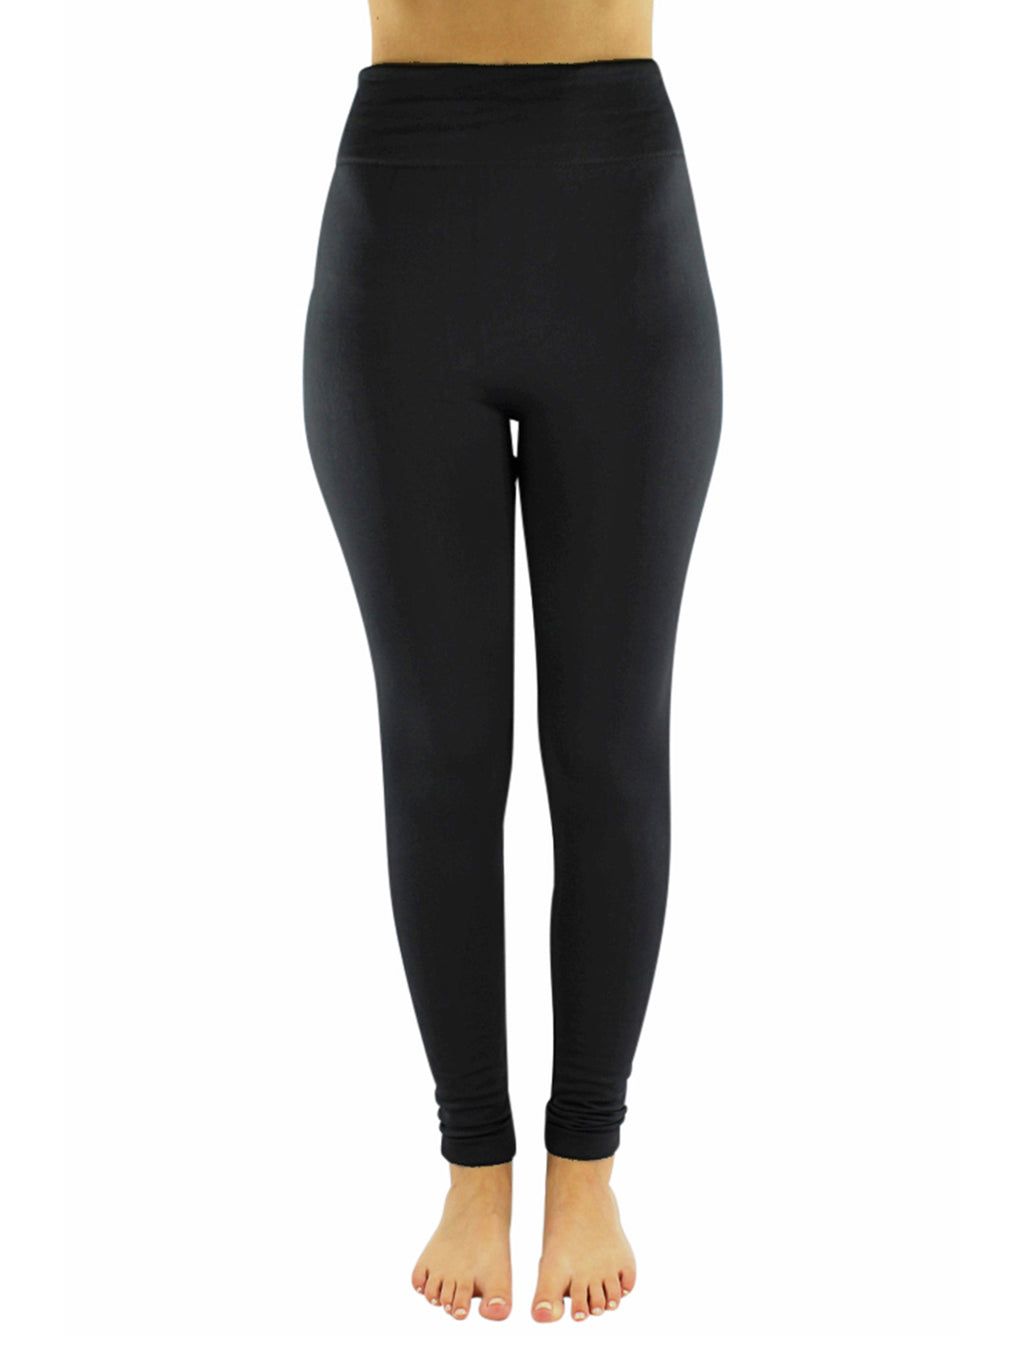 Heavy Fleece Lined Leggings For Women